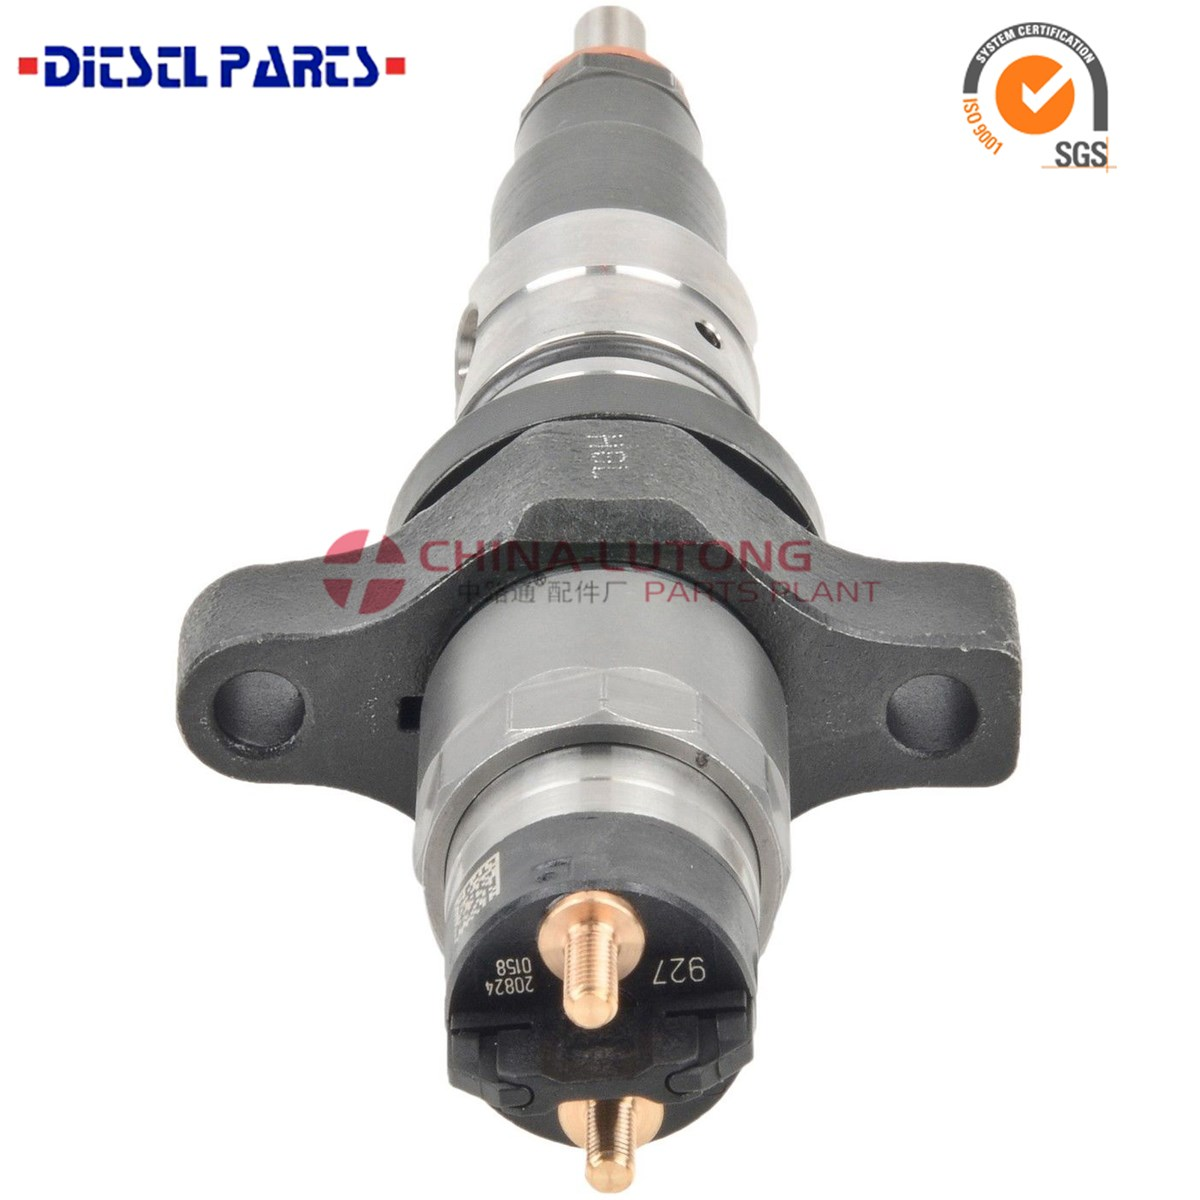 delphi injectors volvo 0 445 120 225 Fuel Injector for Cars in hight quality